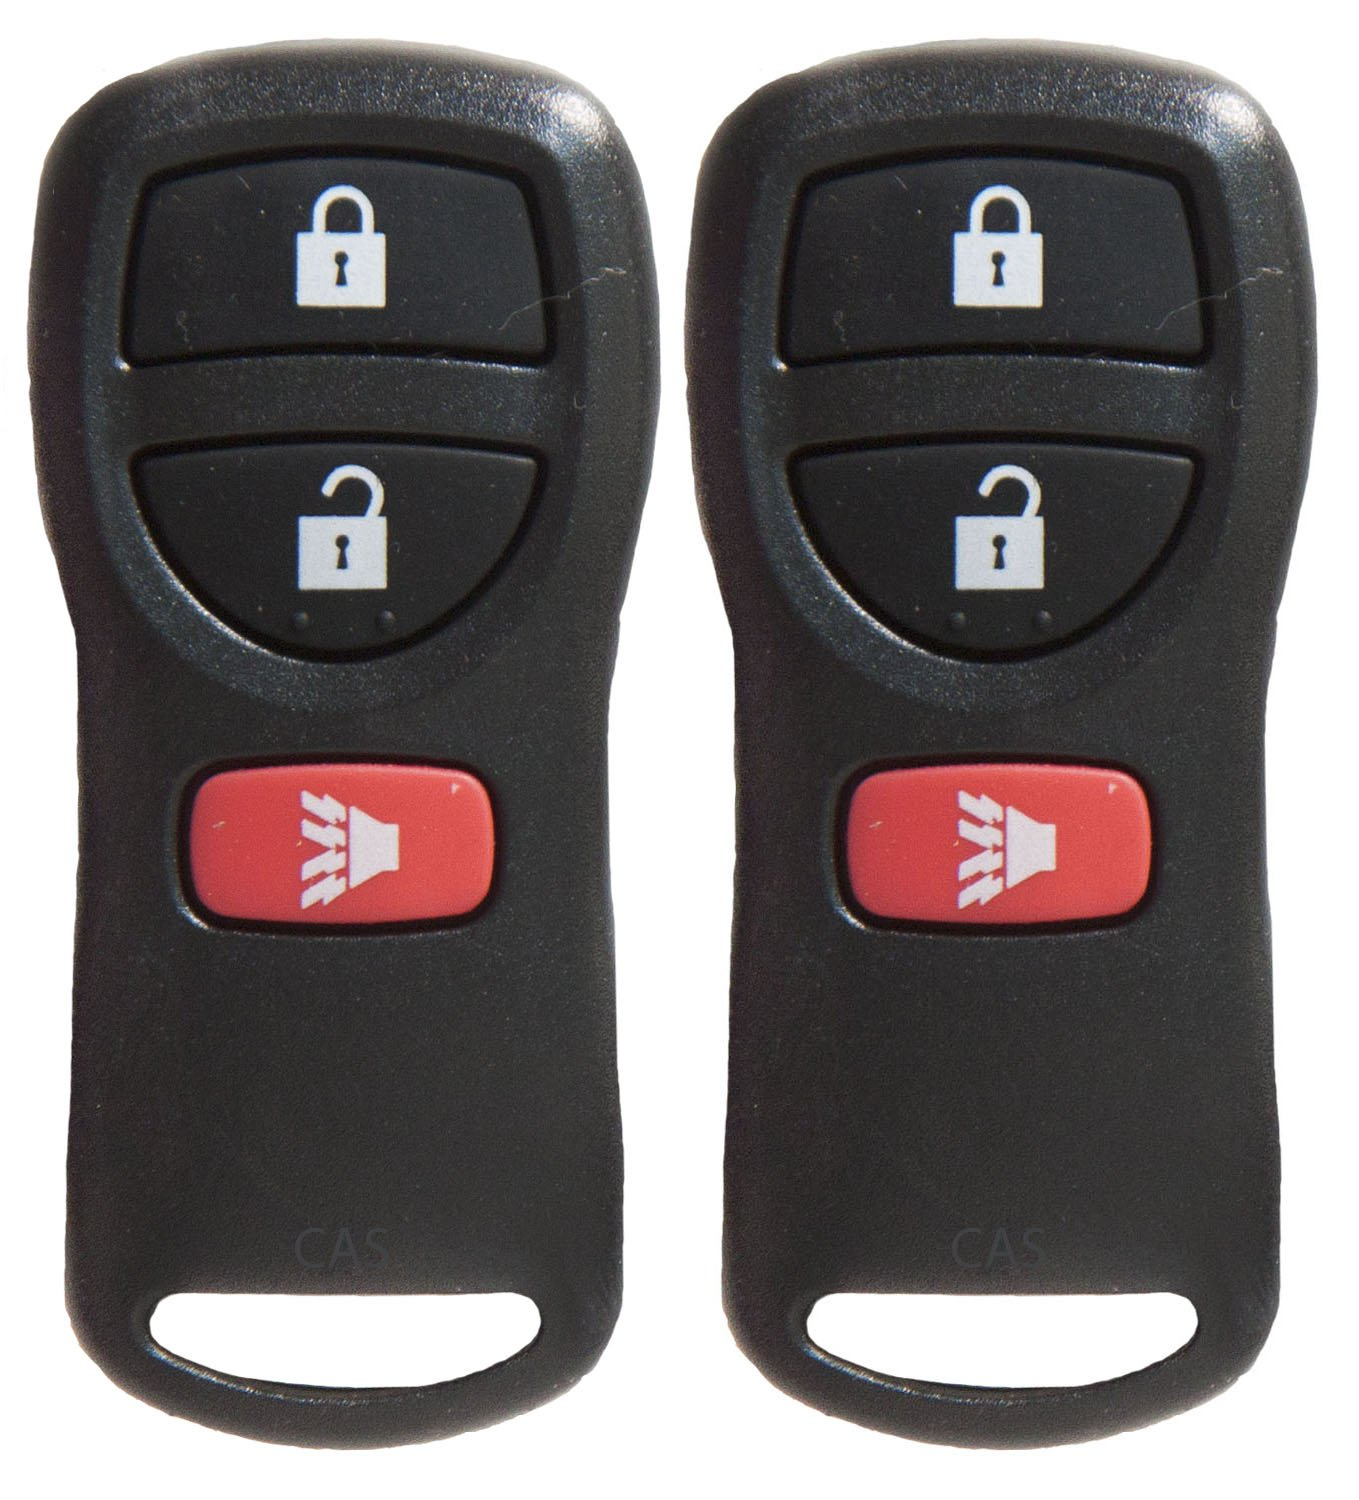 CanadaAutomotiveSupply © - 2 New Keyless Entry 3 Button Remote Car Key Fobs for Select Nissan Infiniti With Free Programming Guide 5828